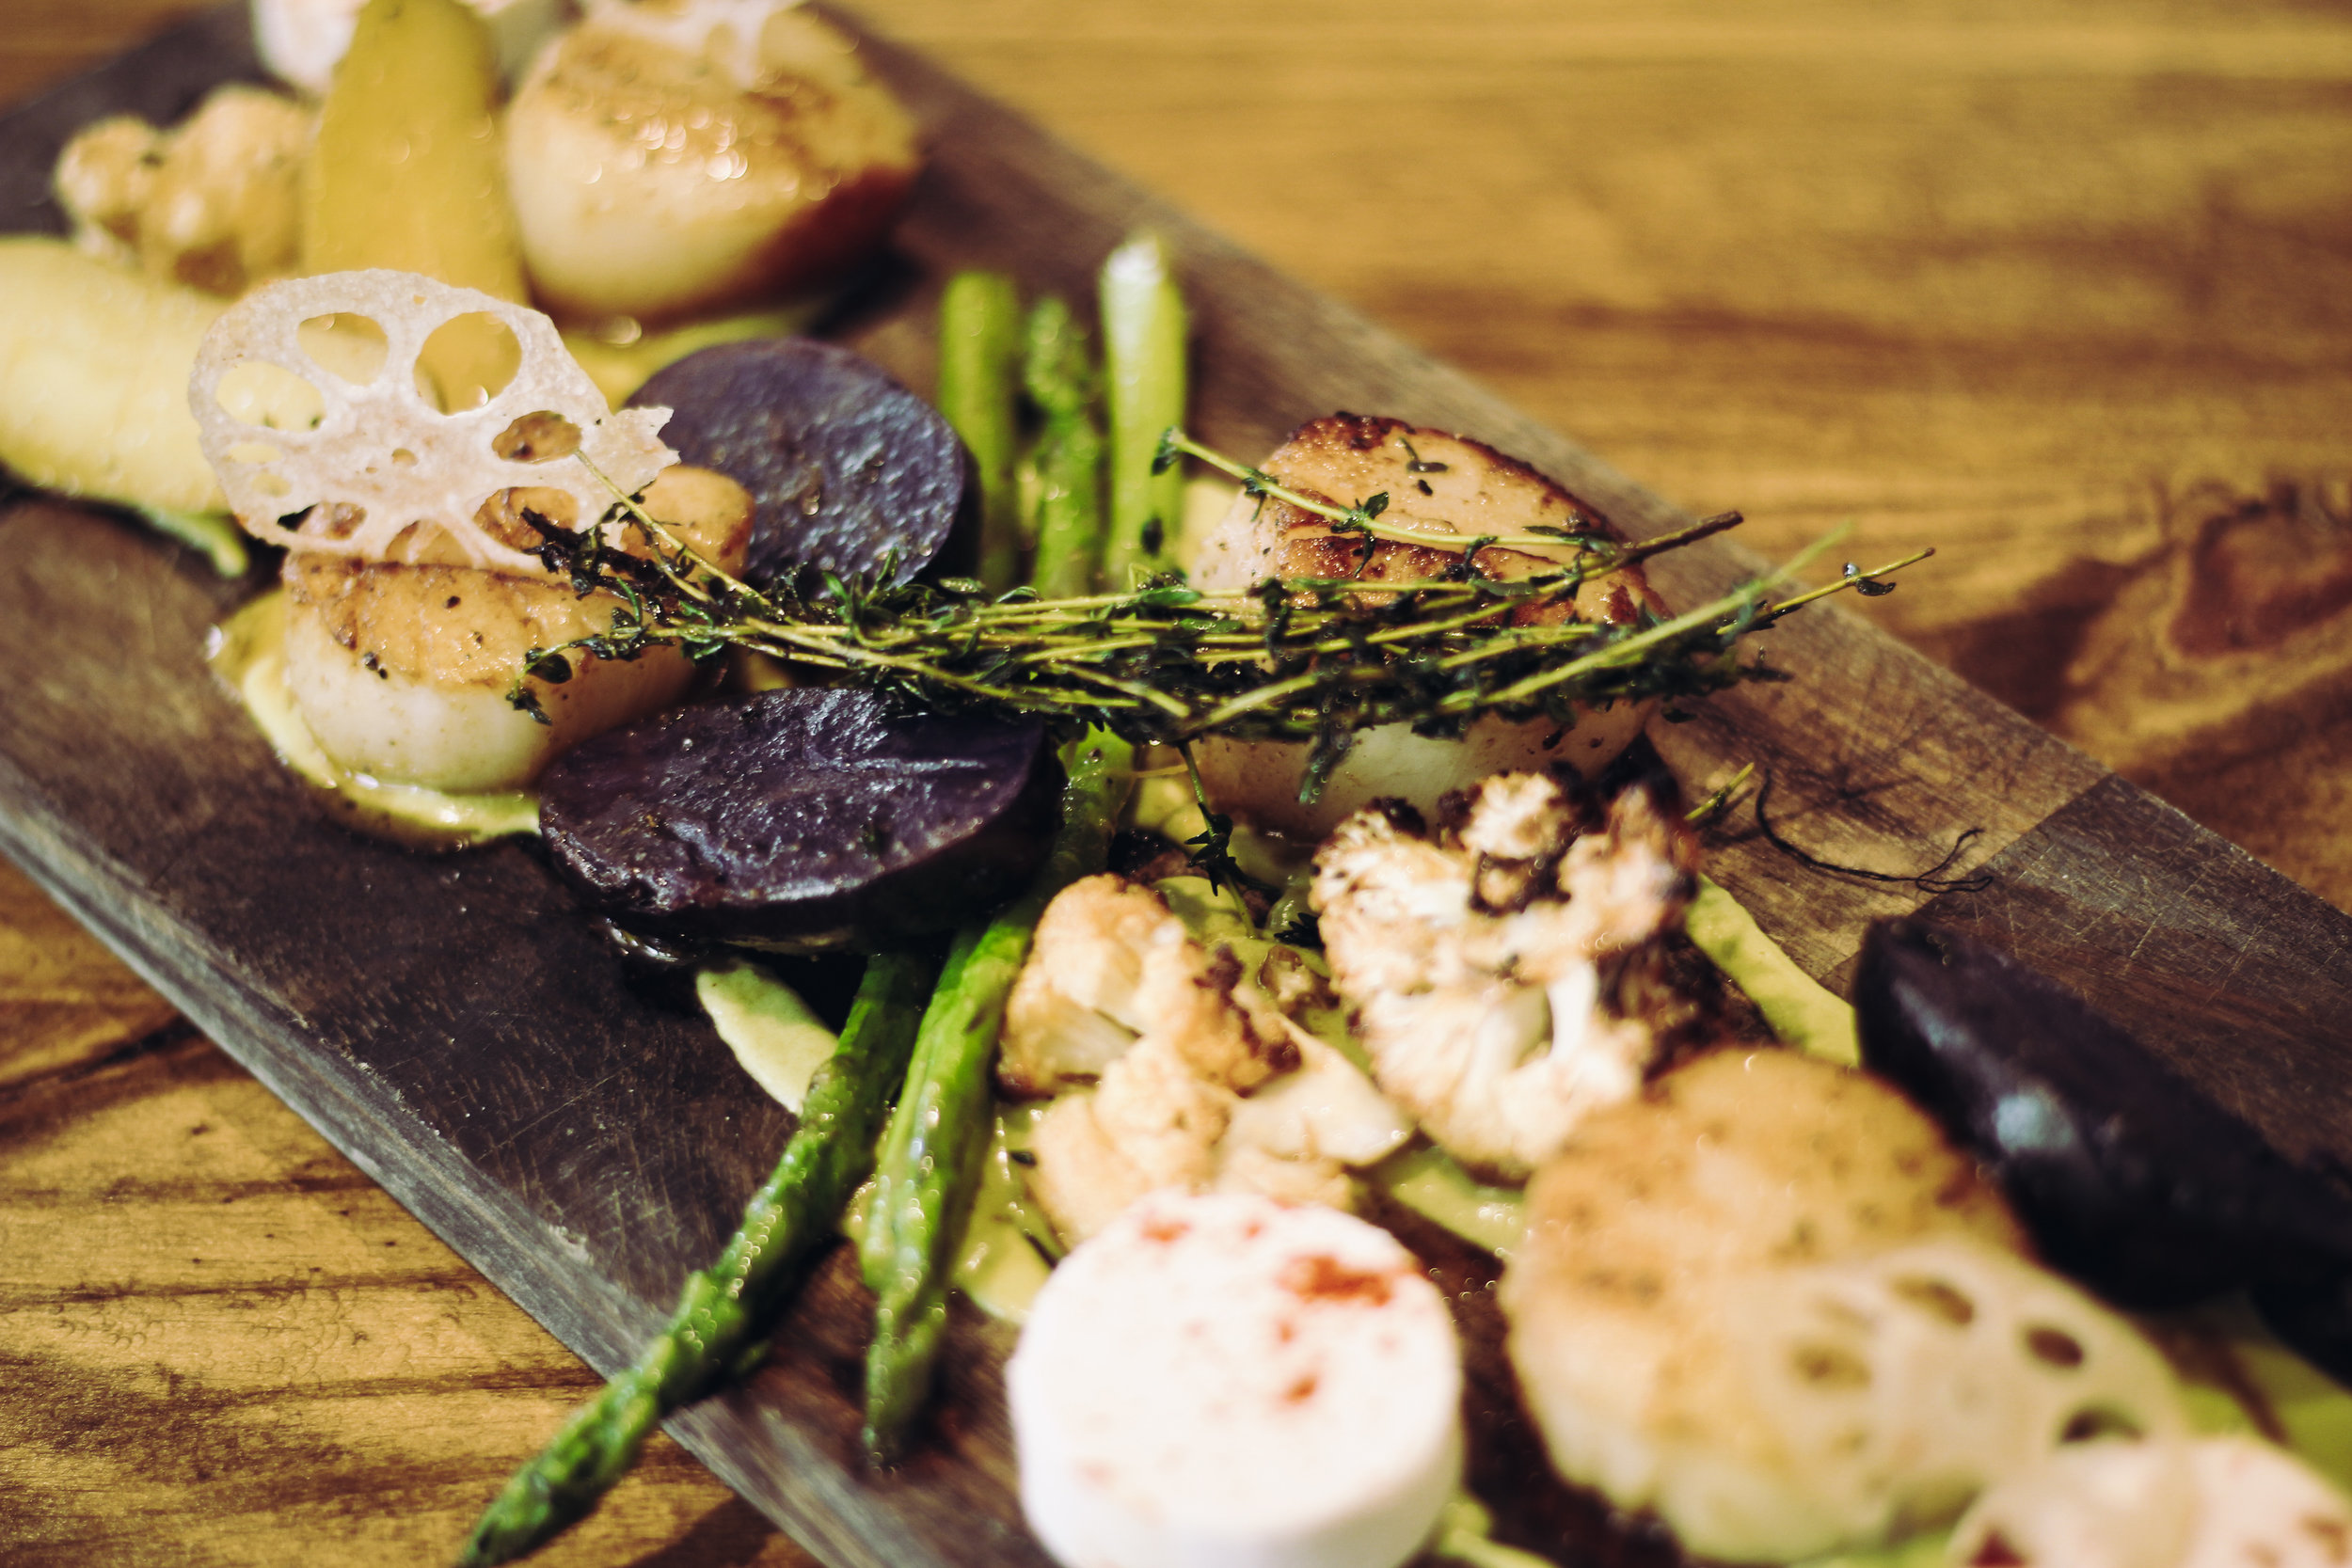 Asparagus, beets, cauliflower and fingerling potatoes sautéed to perfection, garnished with fresh herbs and lotus.